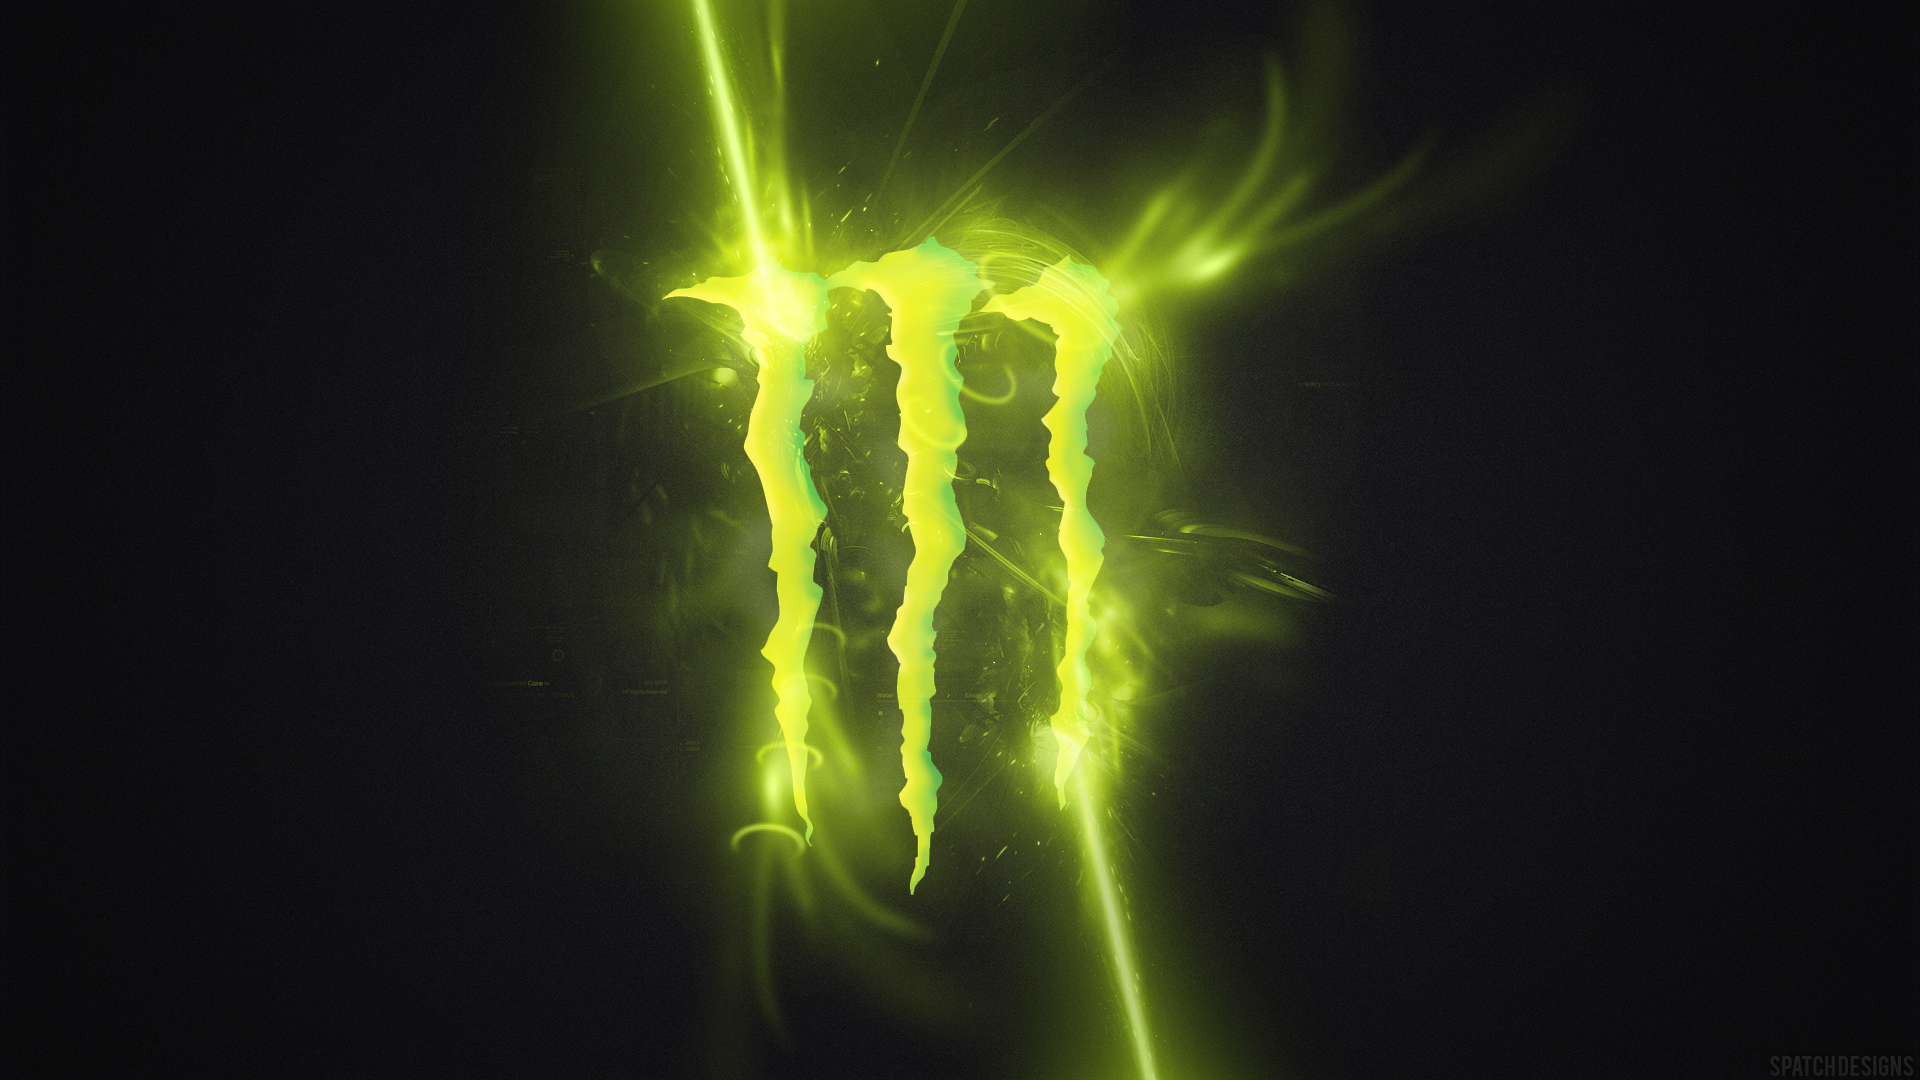 Monster Energy Drink Wallpaper By Ujpg Picture Pictures to 1920x1080